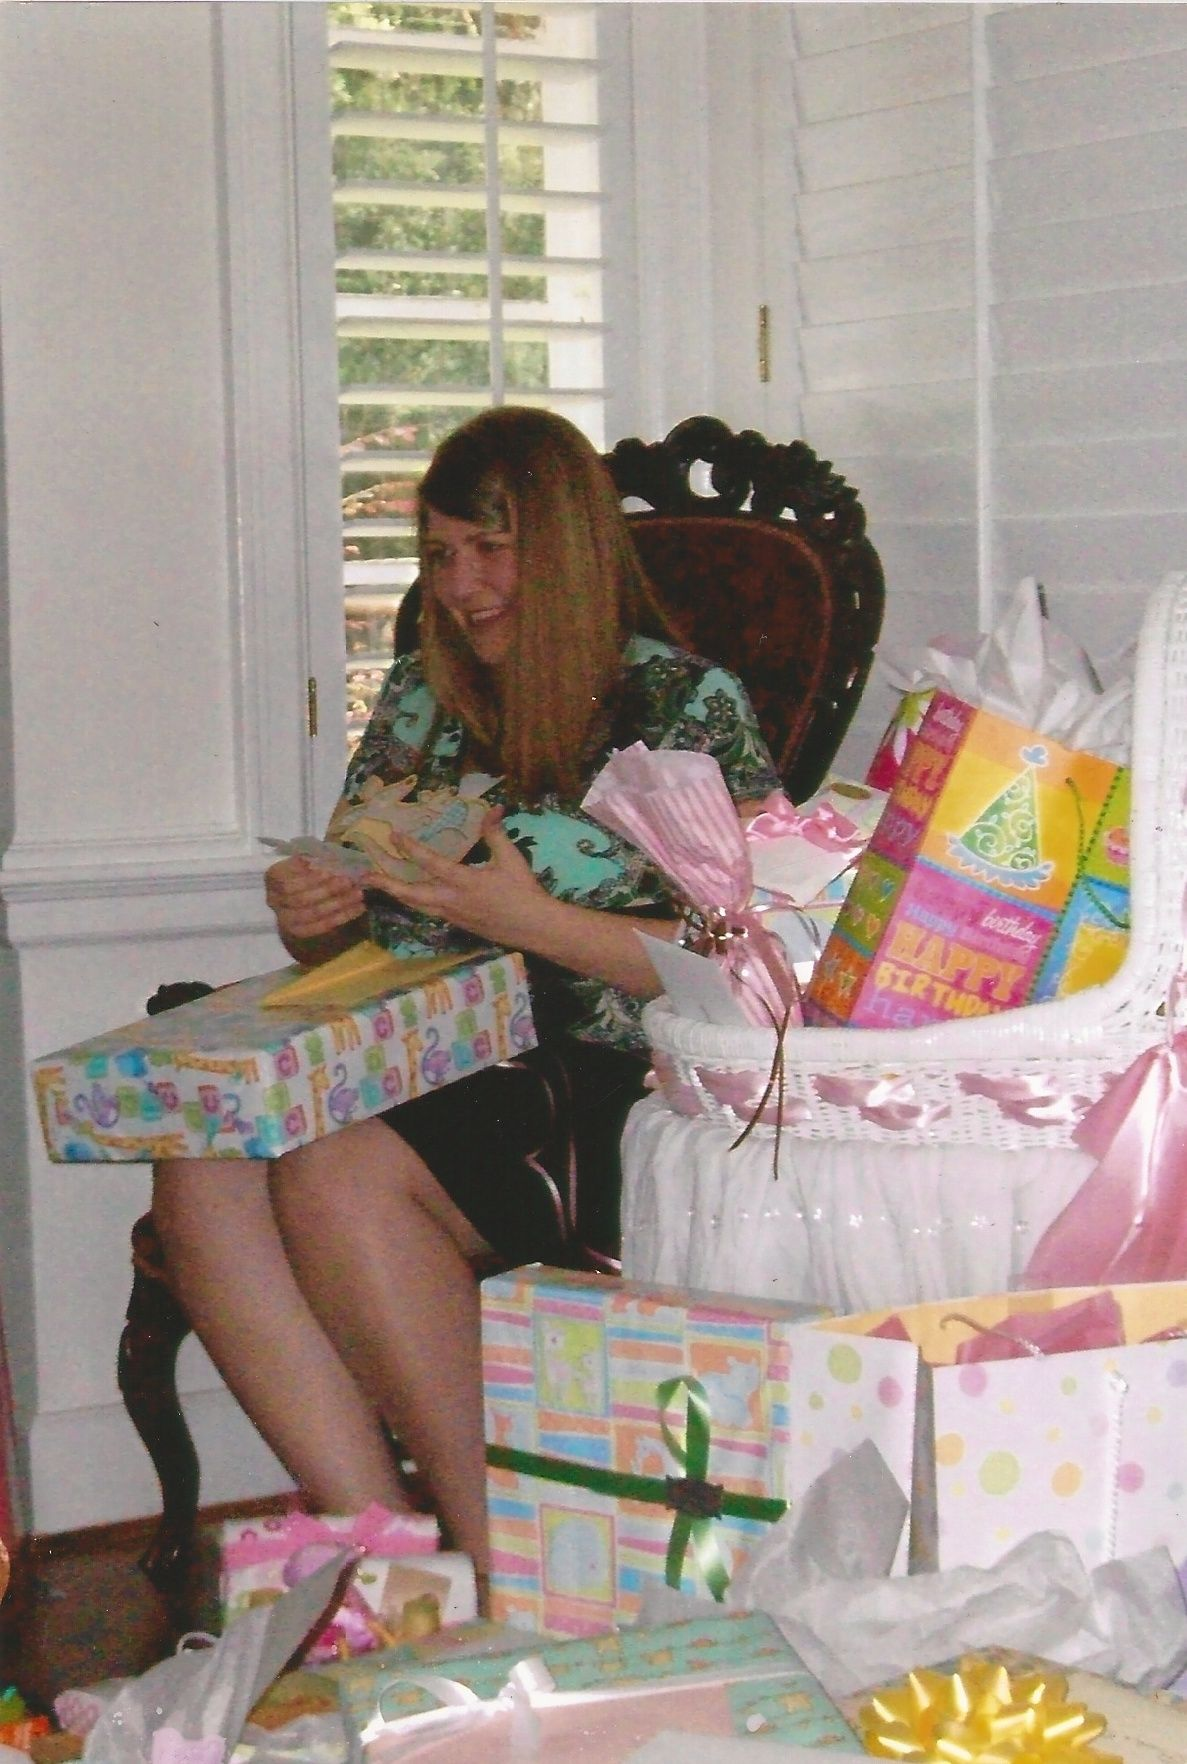 Brooke with presents